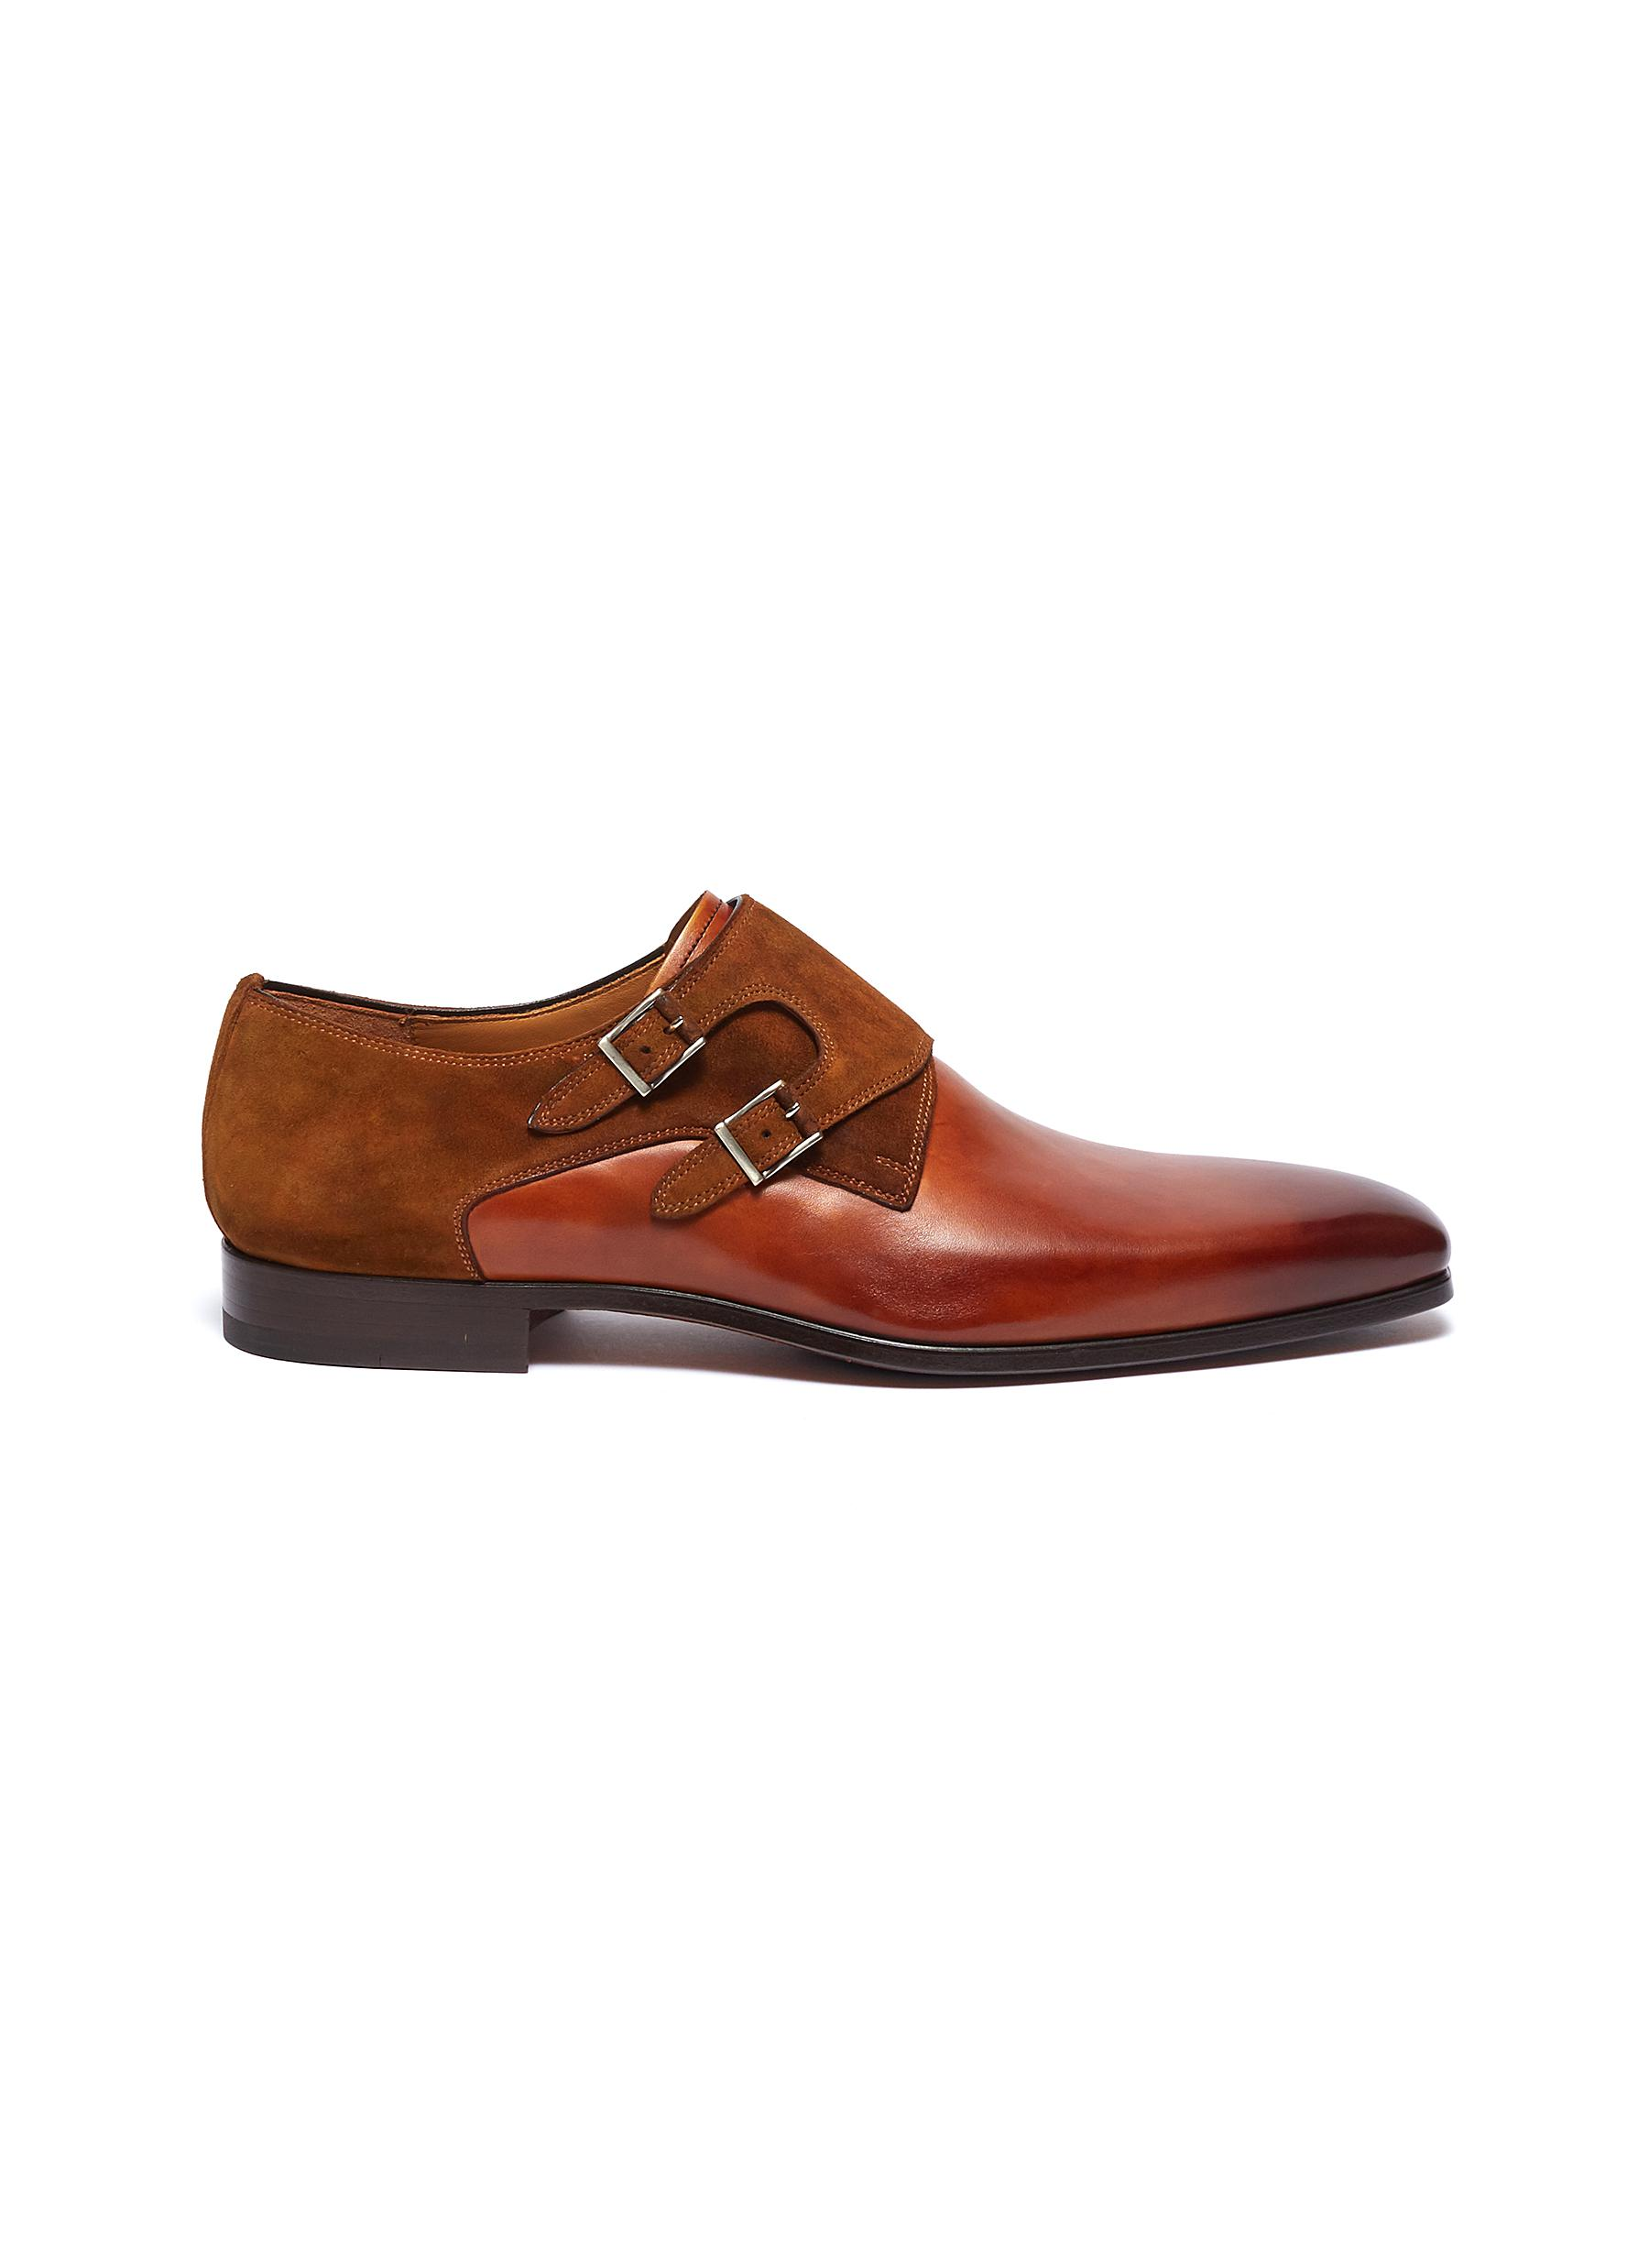 63ac8743fc3 Magnanni. Suede panel double monk strap leather shoes